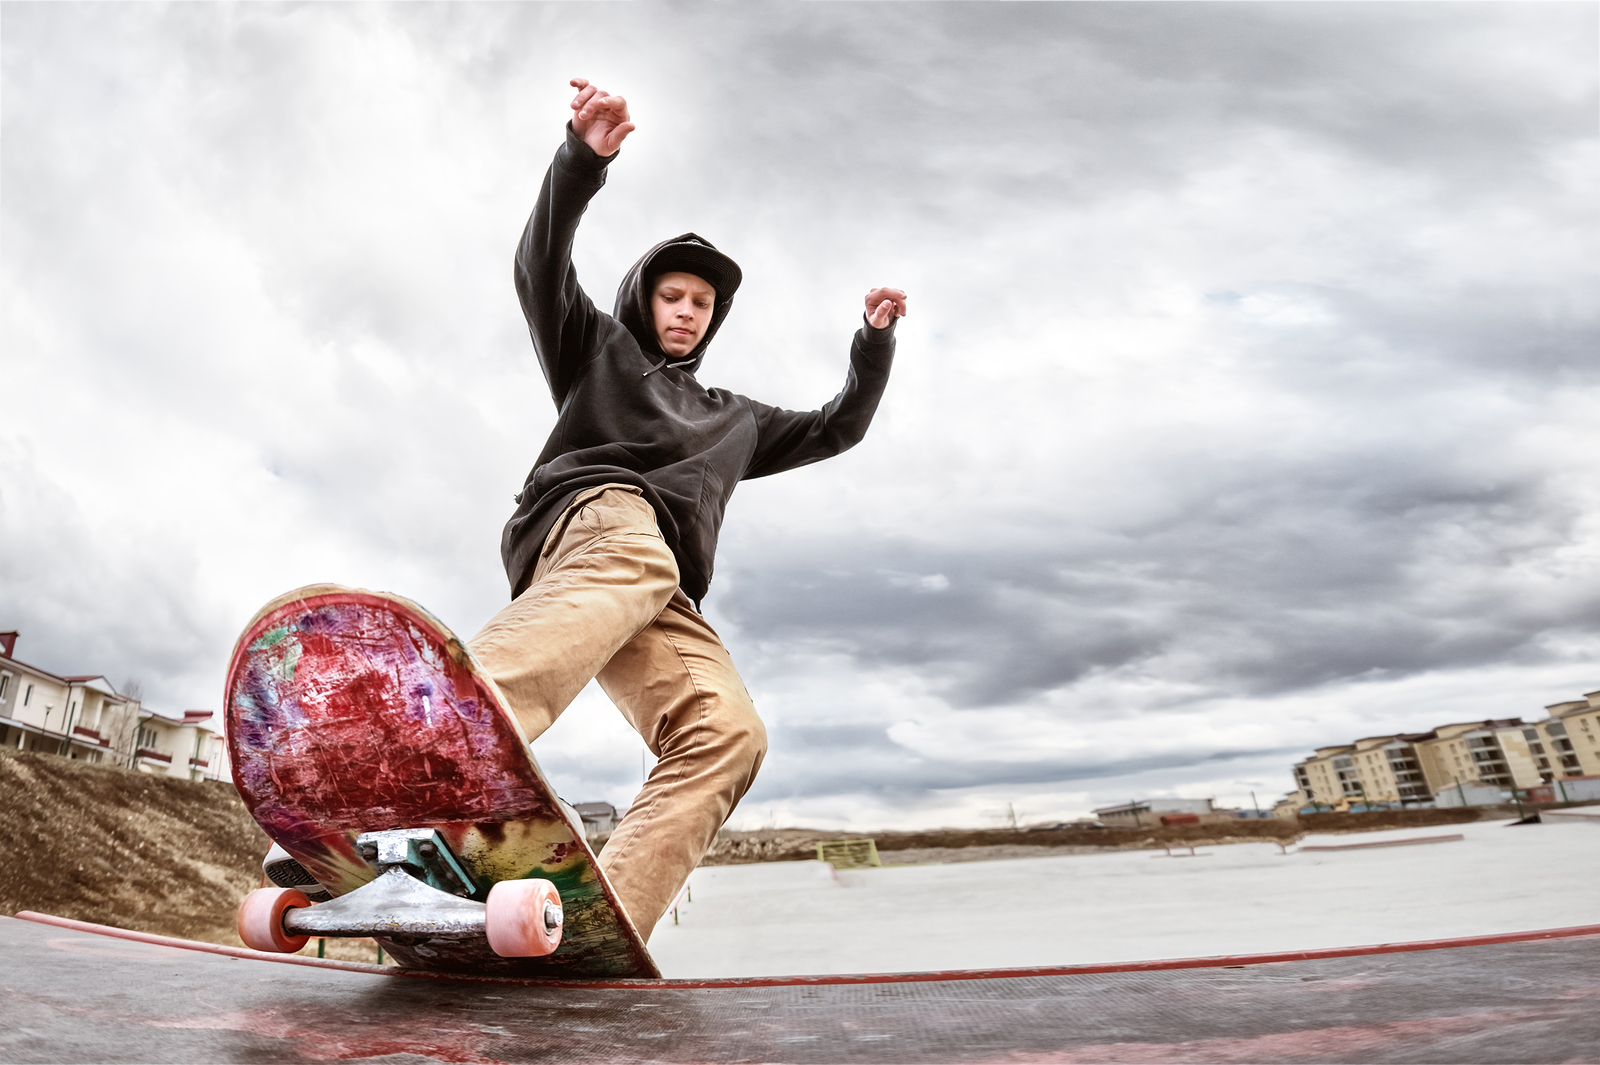 California Skate Parks changes the game